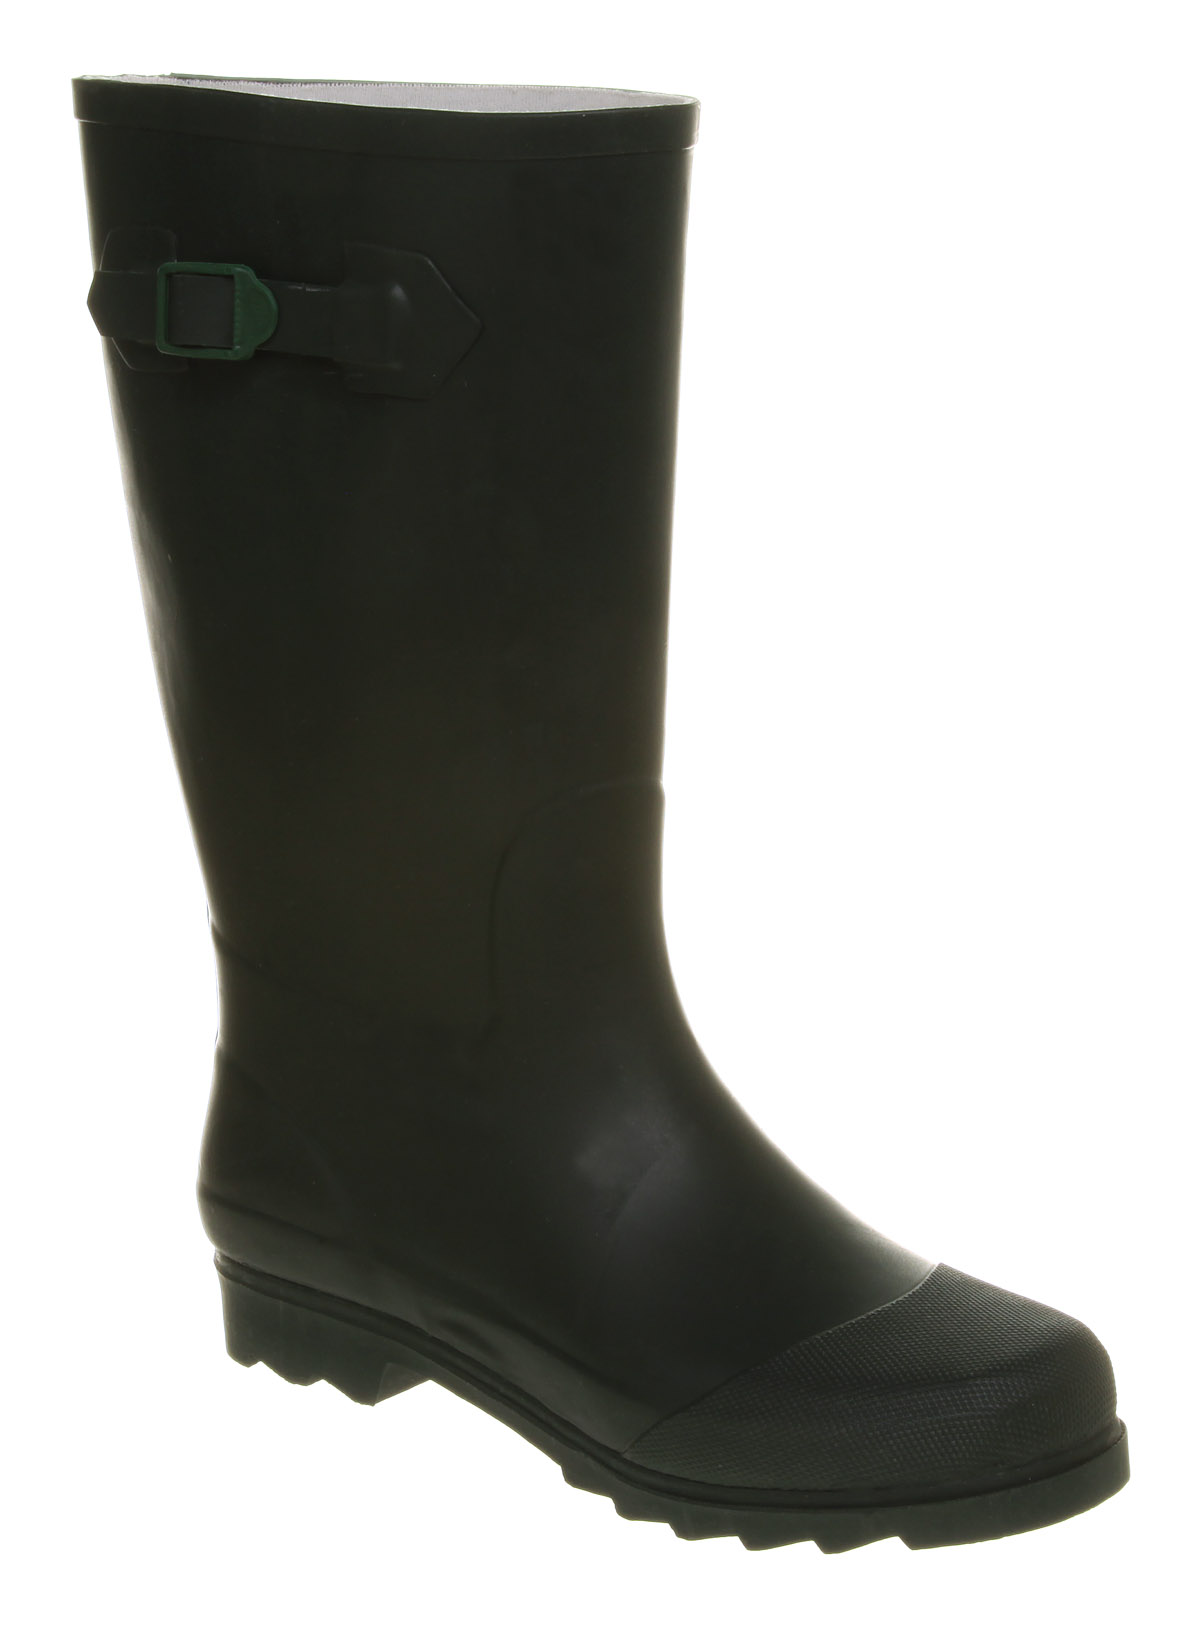 Mens-Office-Judes-Welly-Green-Rubber-Boots